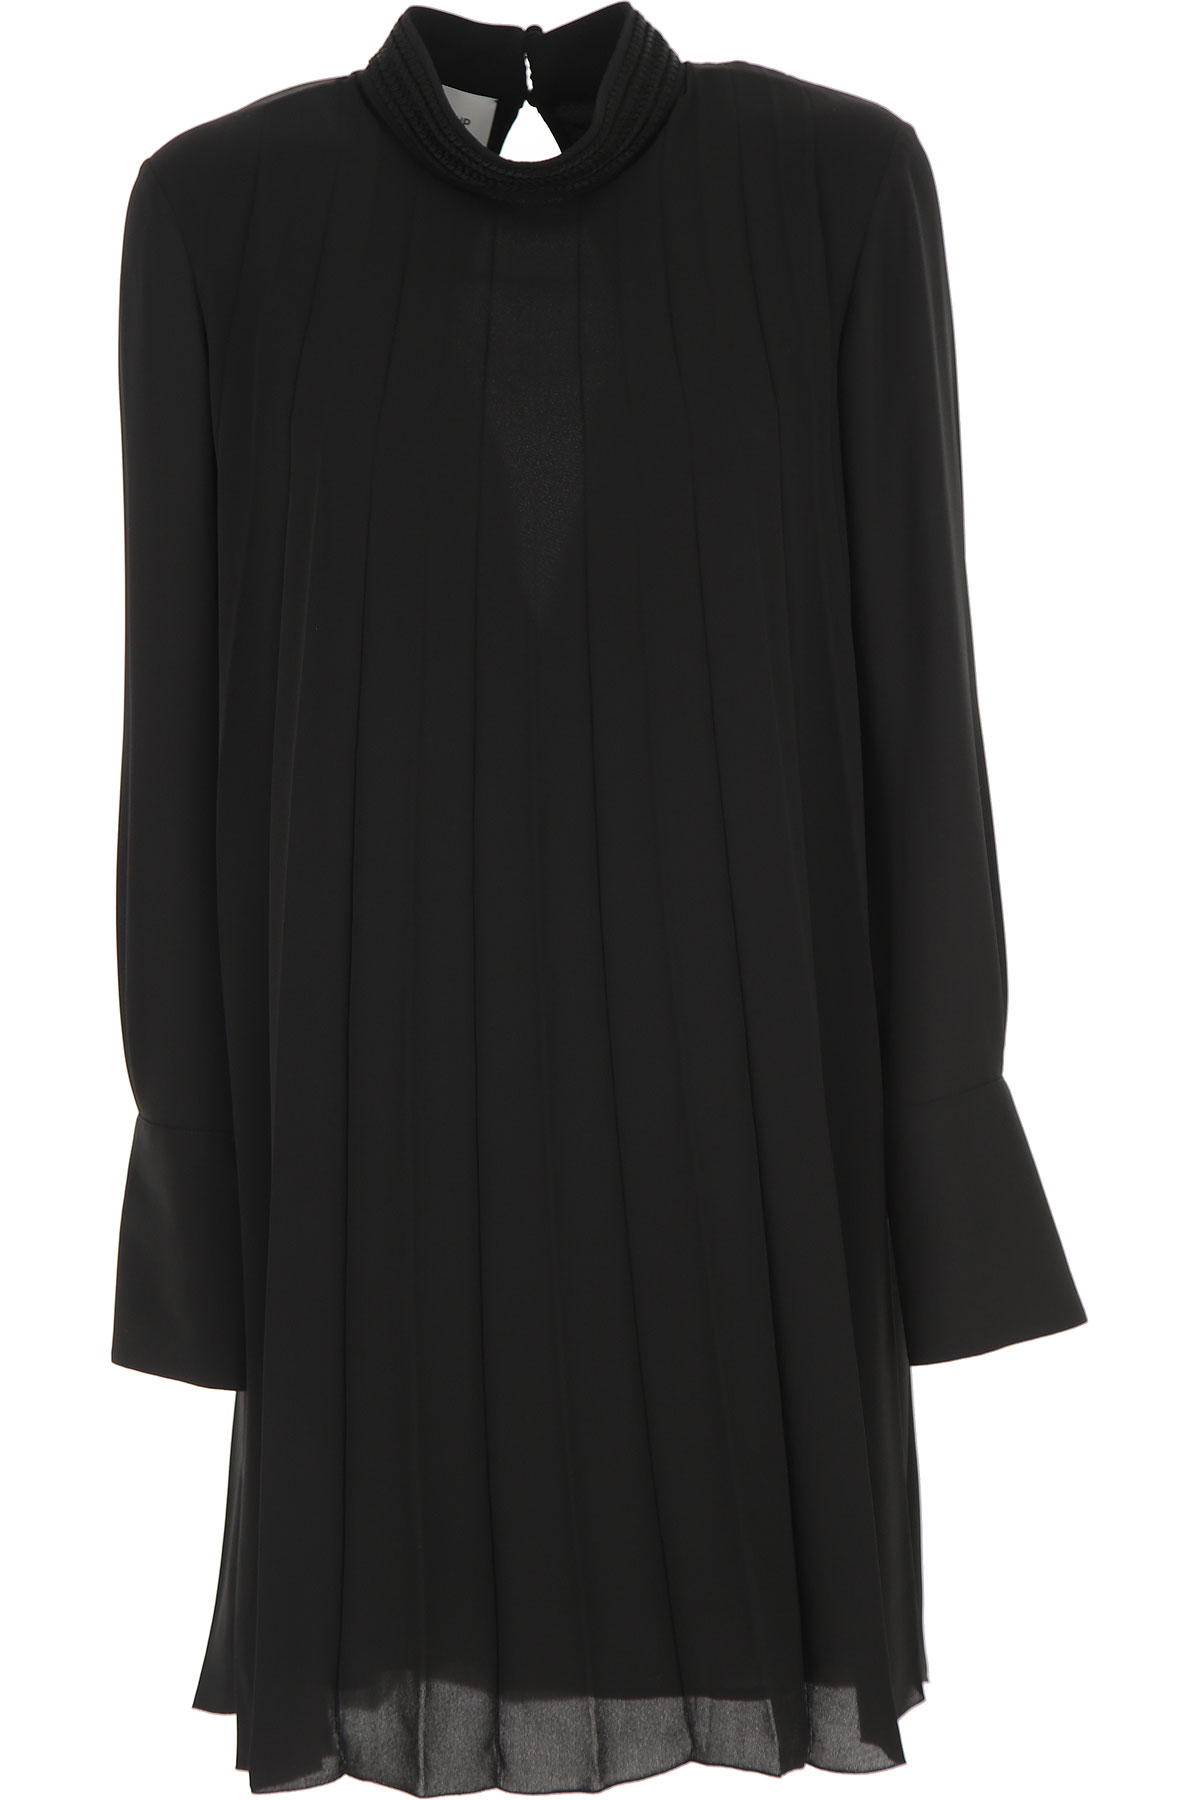 Dondup Dress for Women, Evening Cocktail Party On Sale, Black, polyester, 2019, 6 8